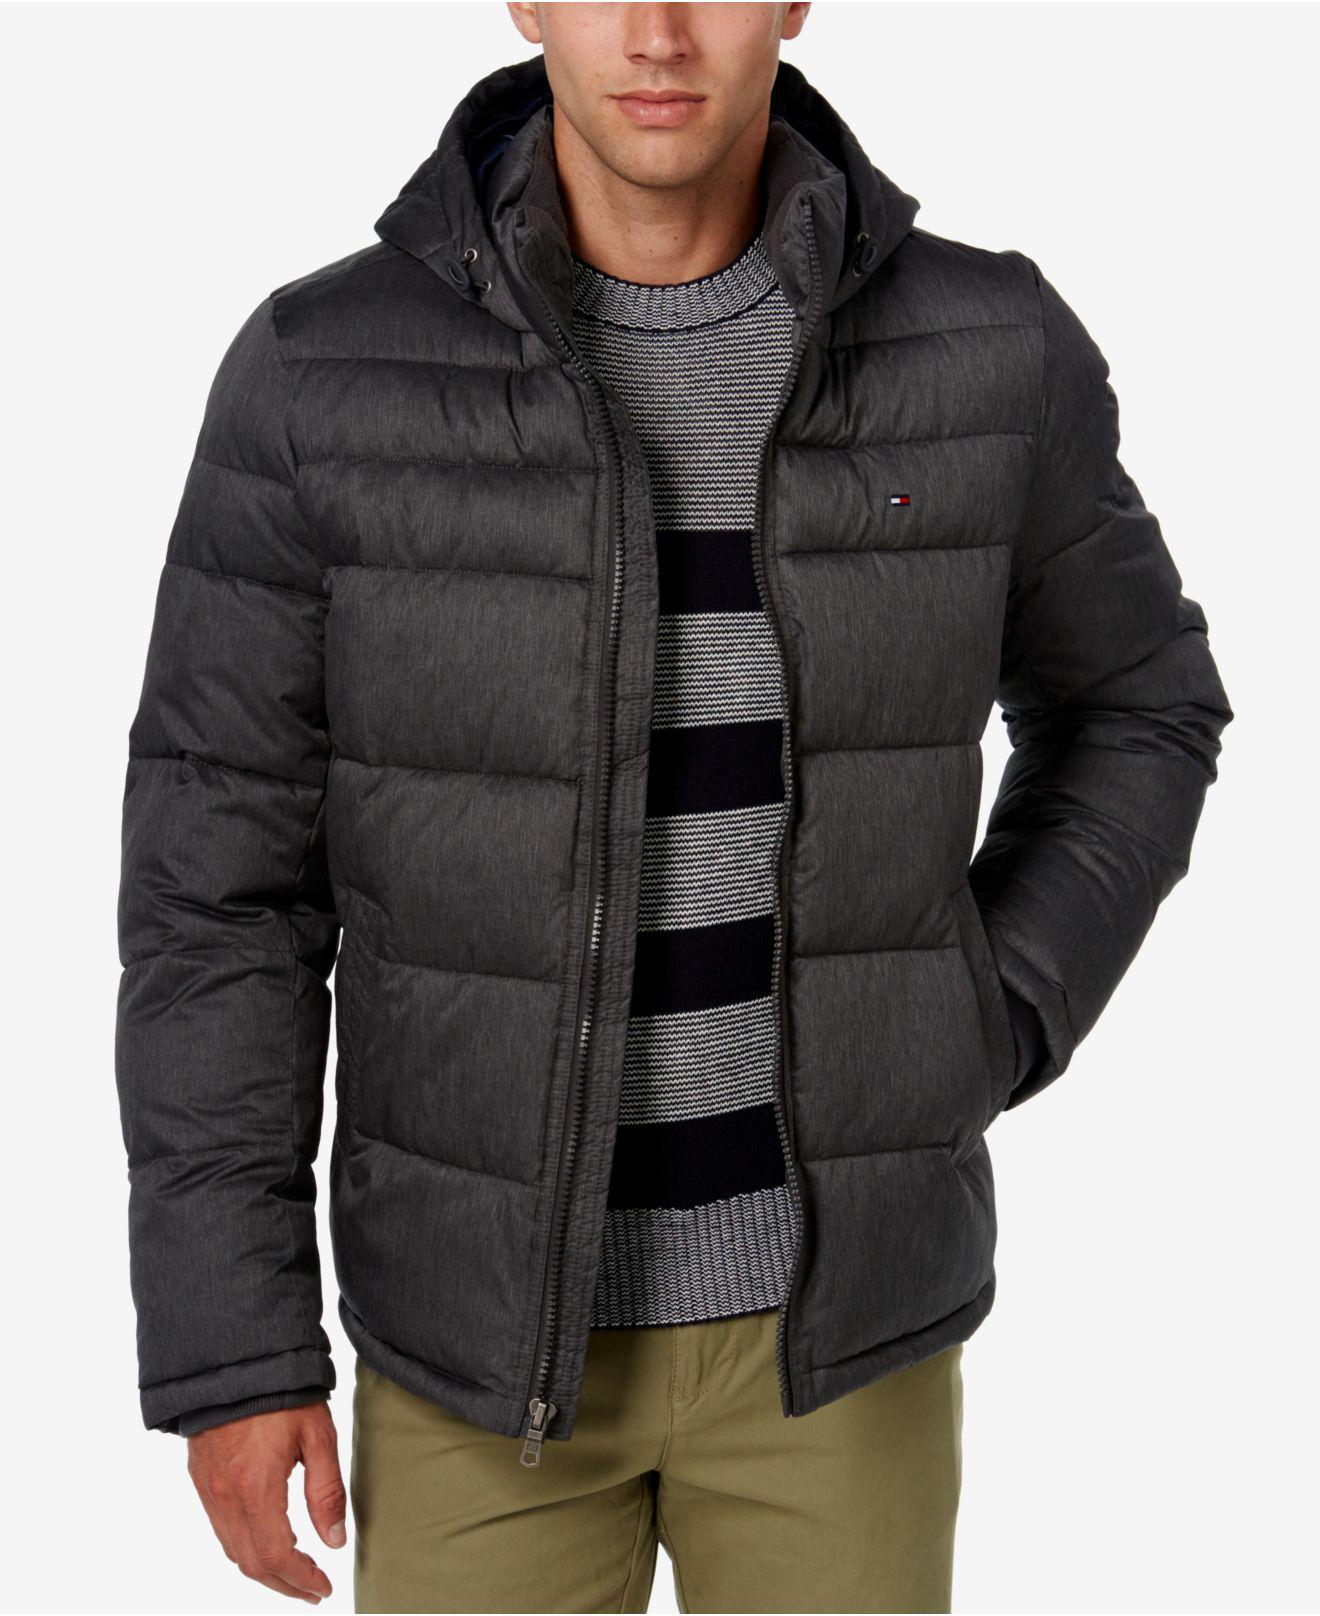 98370067 Tommy Hilfiger Classic Hooded Puffer Jacket in Black for Men - Save ...